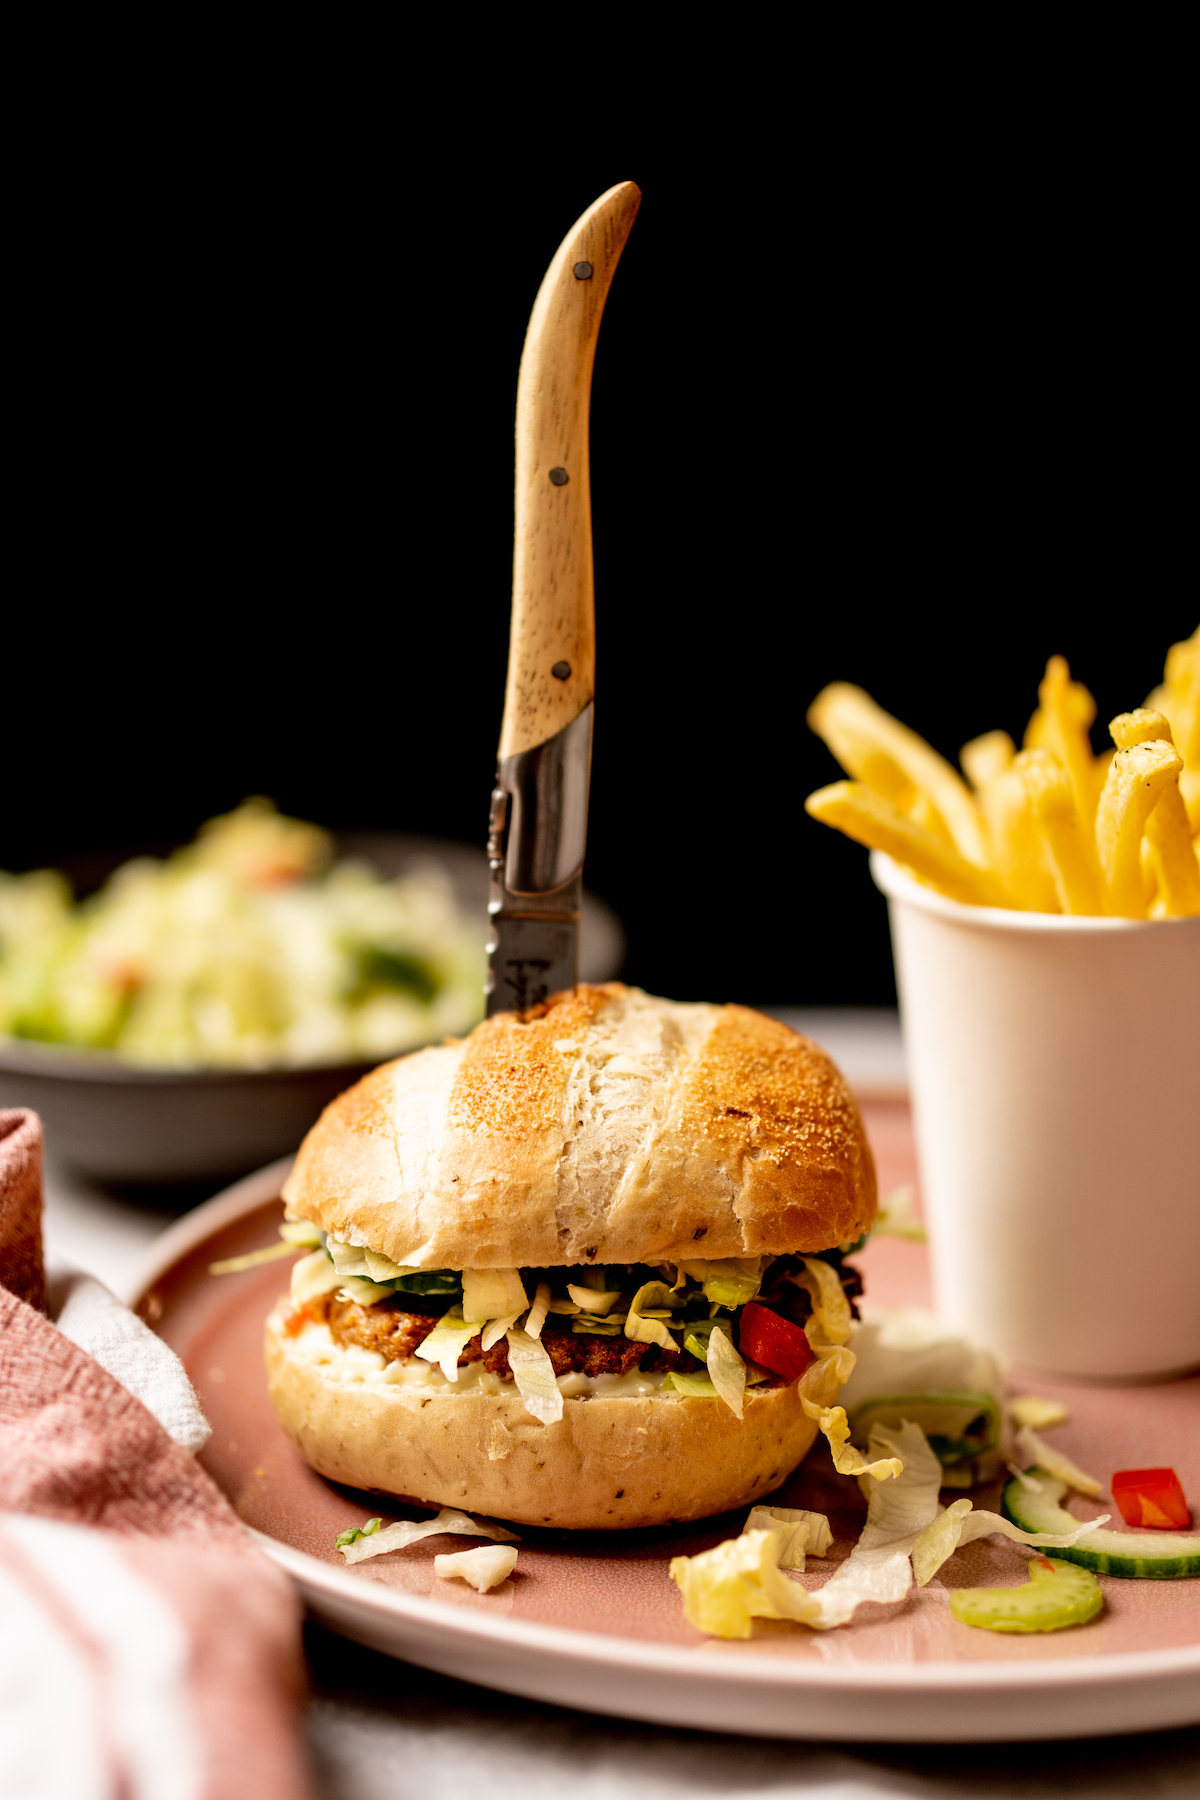 Vegetarische burger met friet